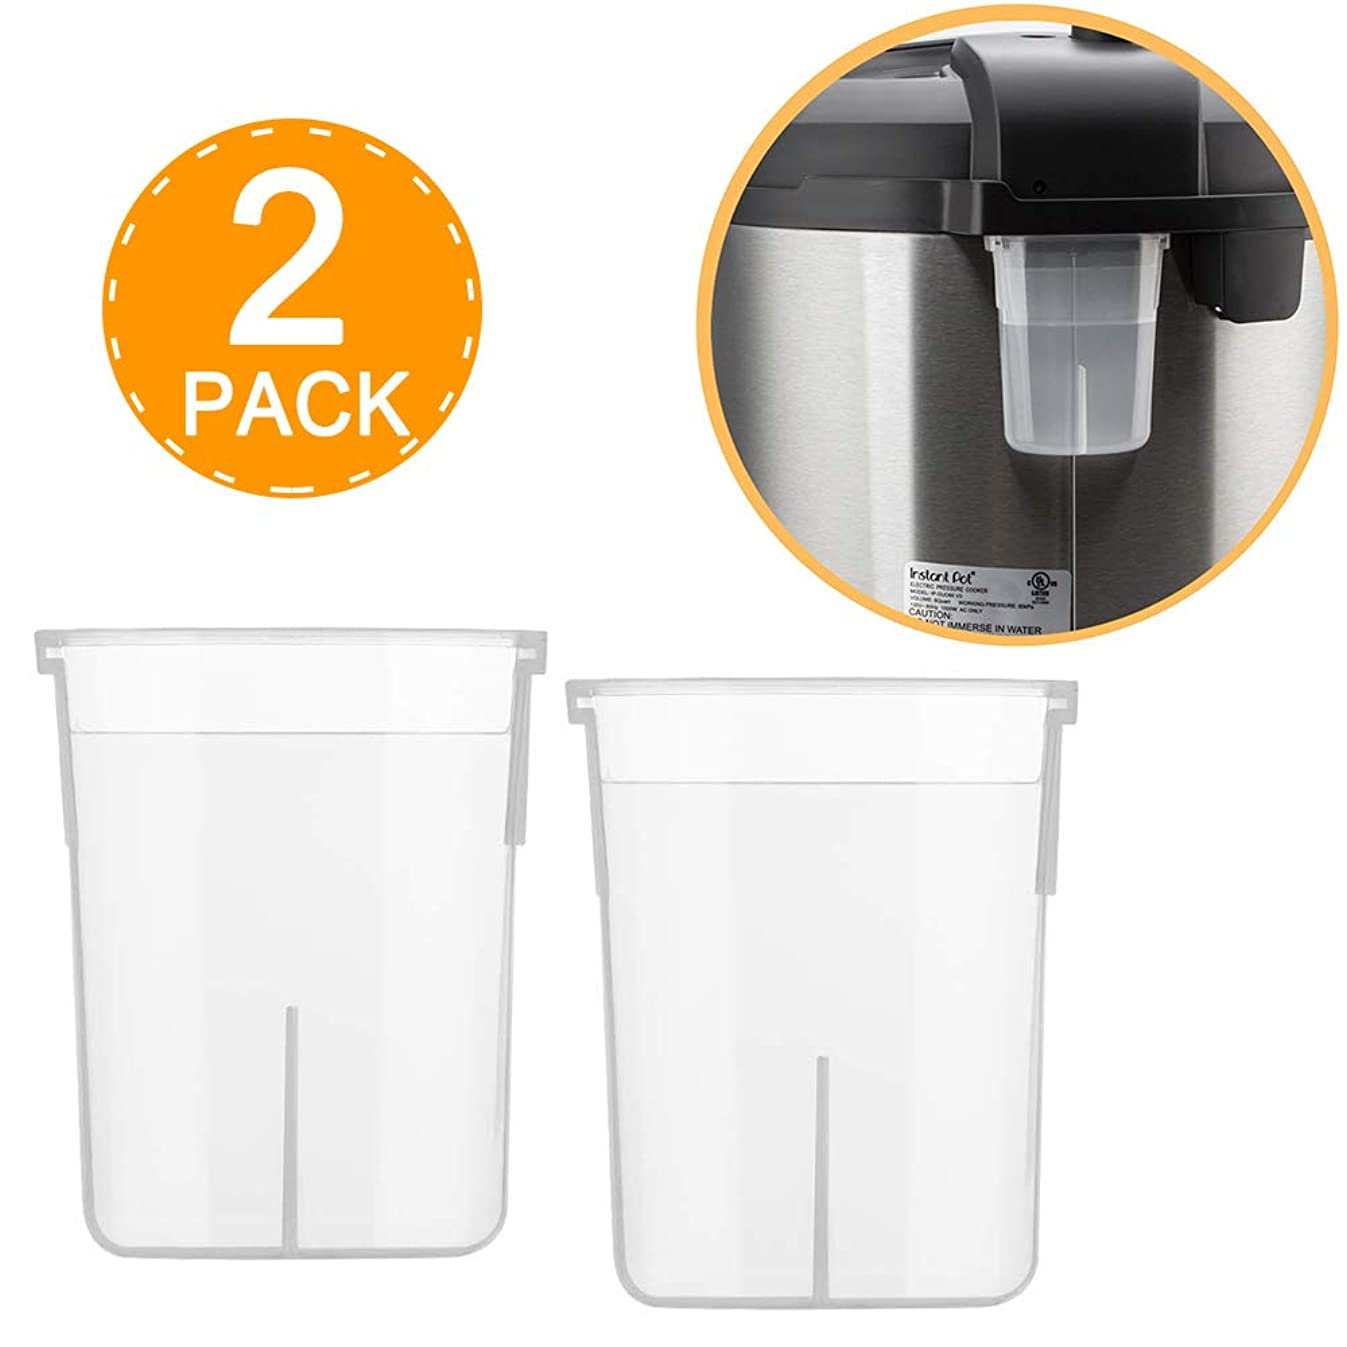 Wish Original Condensation Collector for Instant Pot 5, 6, 8 Quart Duo, Duo Plus, Ultra, Lux, Smart (2 Pack)